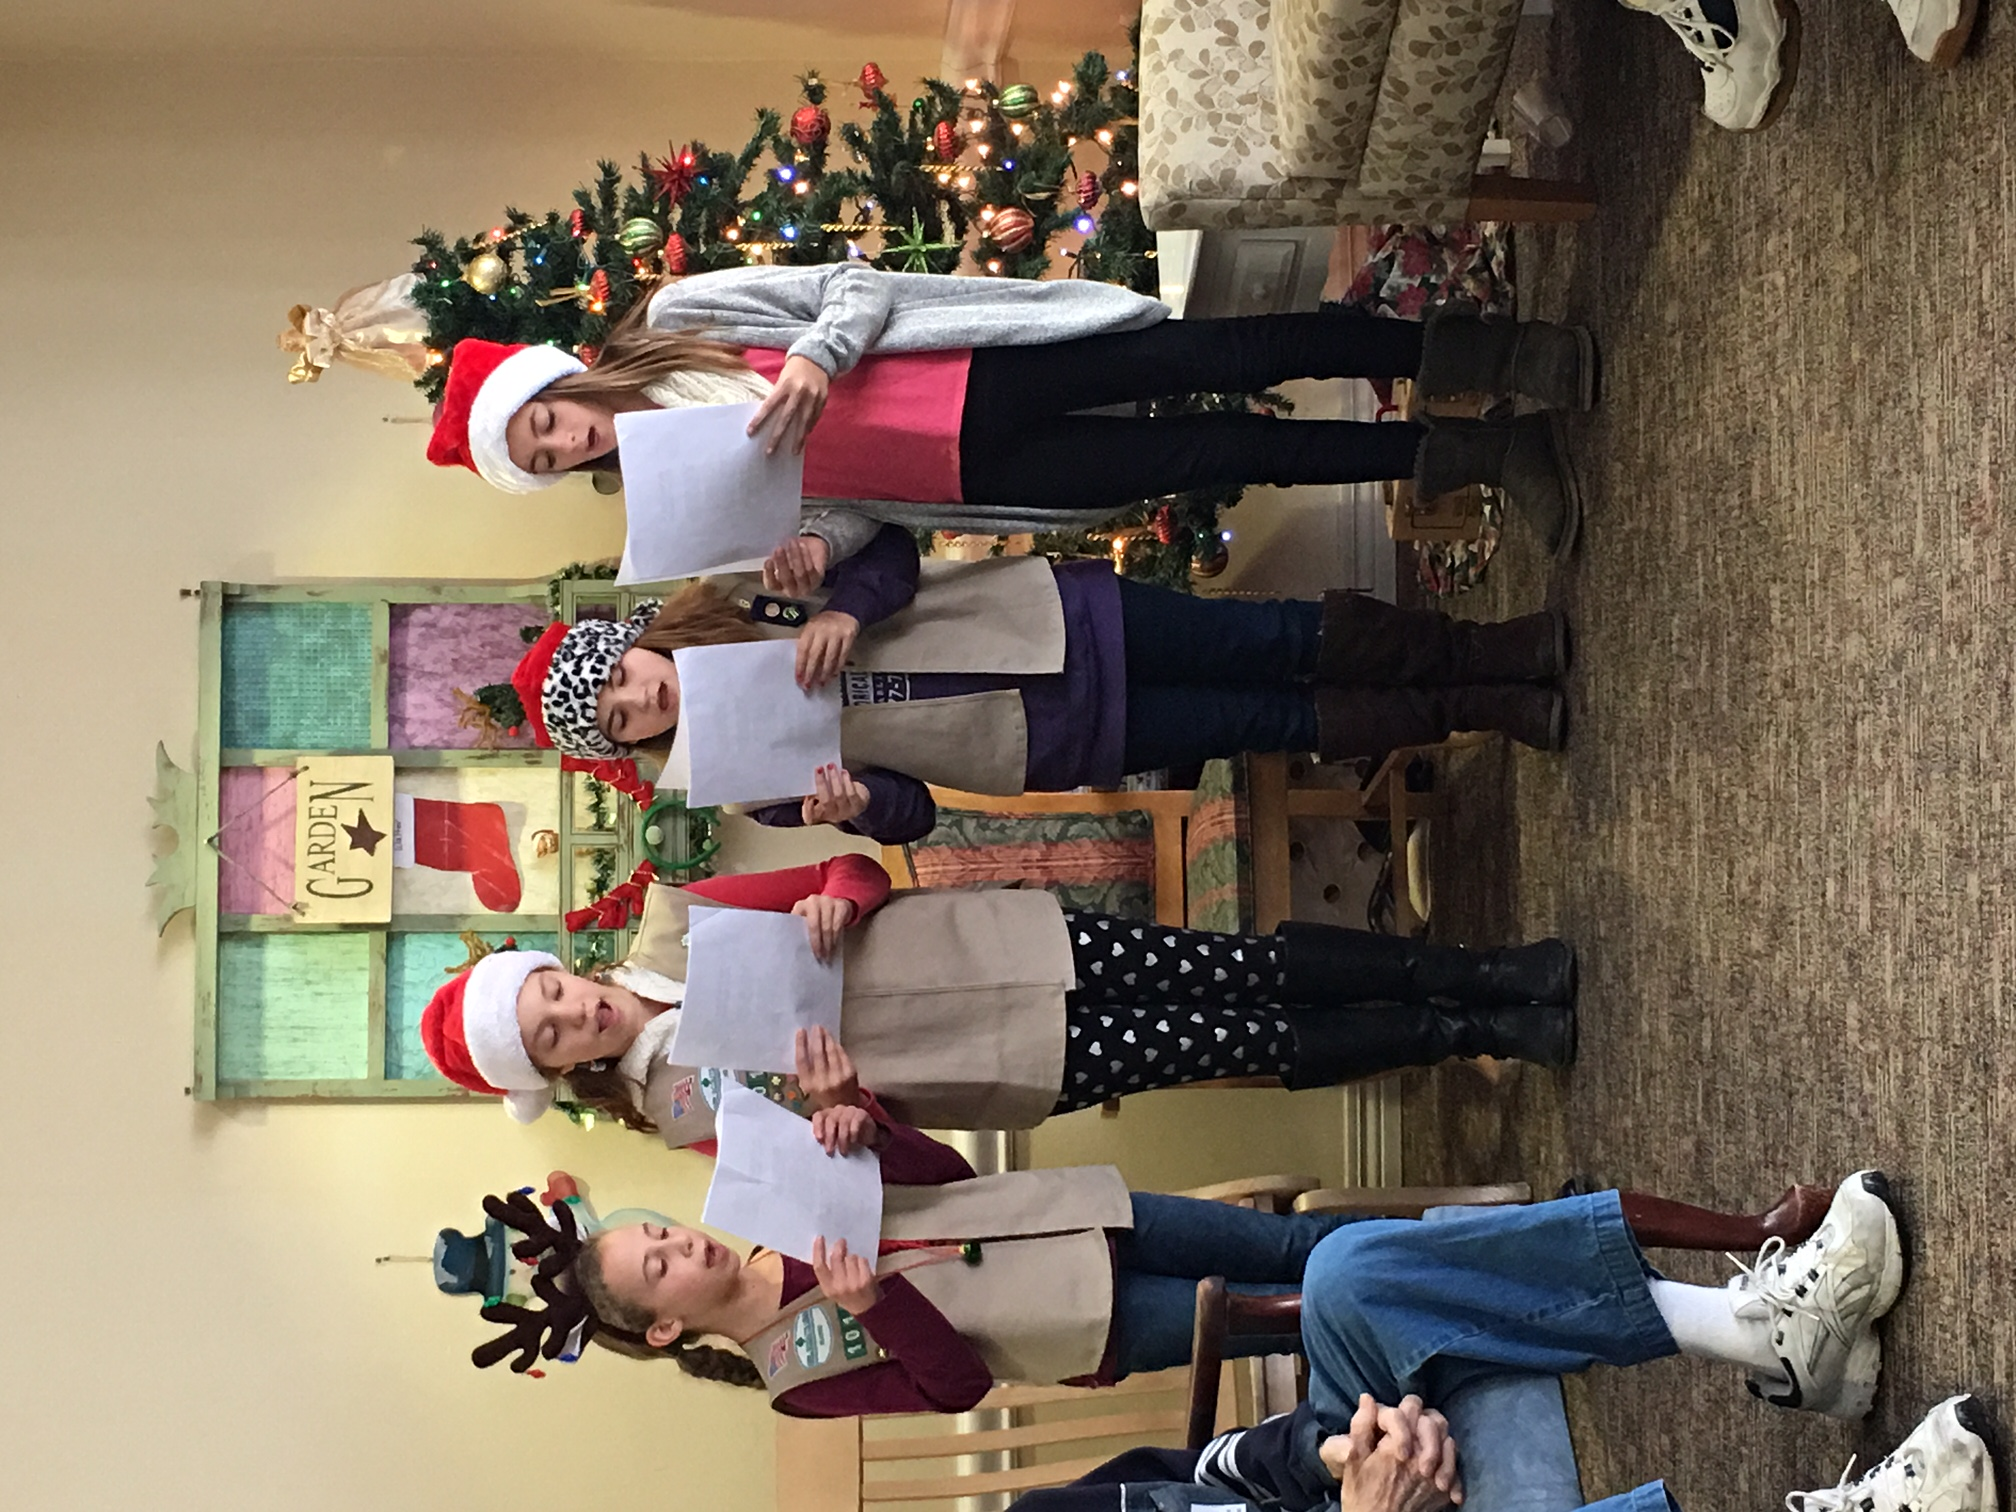 Girl Scouts of Maine Troop 1011 went Caroling at Kindred Living at Monarch in Saco On Dec. 7. They loved bringing the spirit of the season to the residents. Troop members pictured from left are Jordan Anderson, Edie Harriman, Isabelle Rocheleau and Brooke Heon.